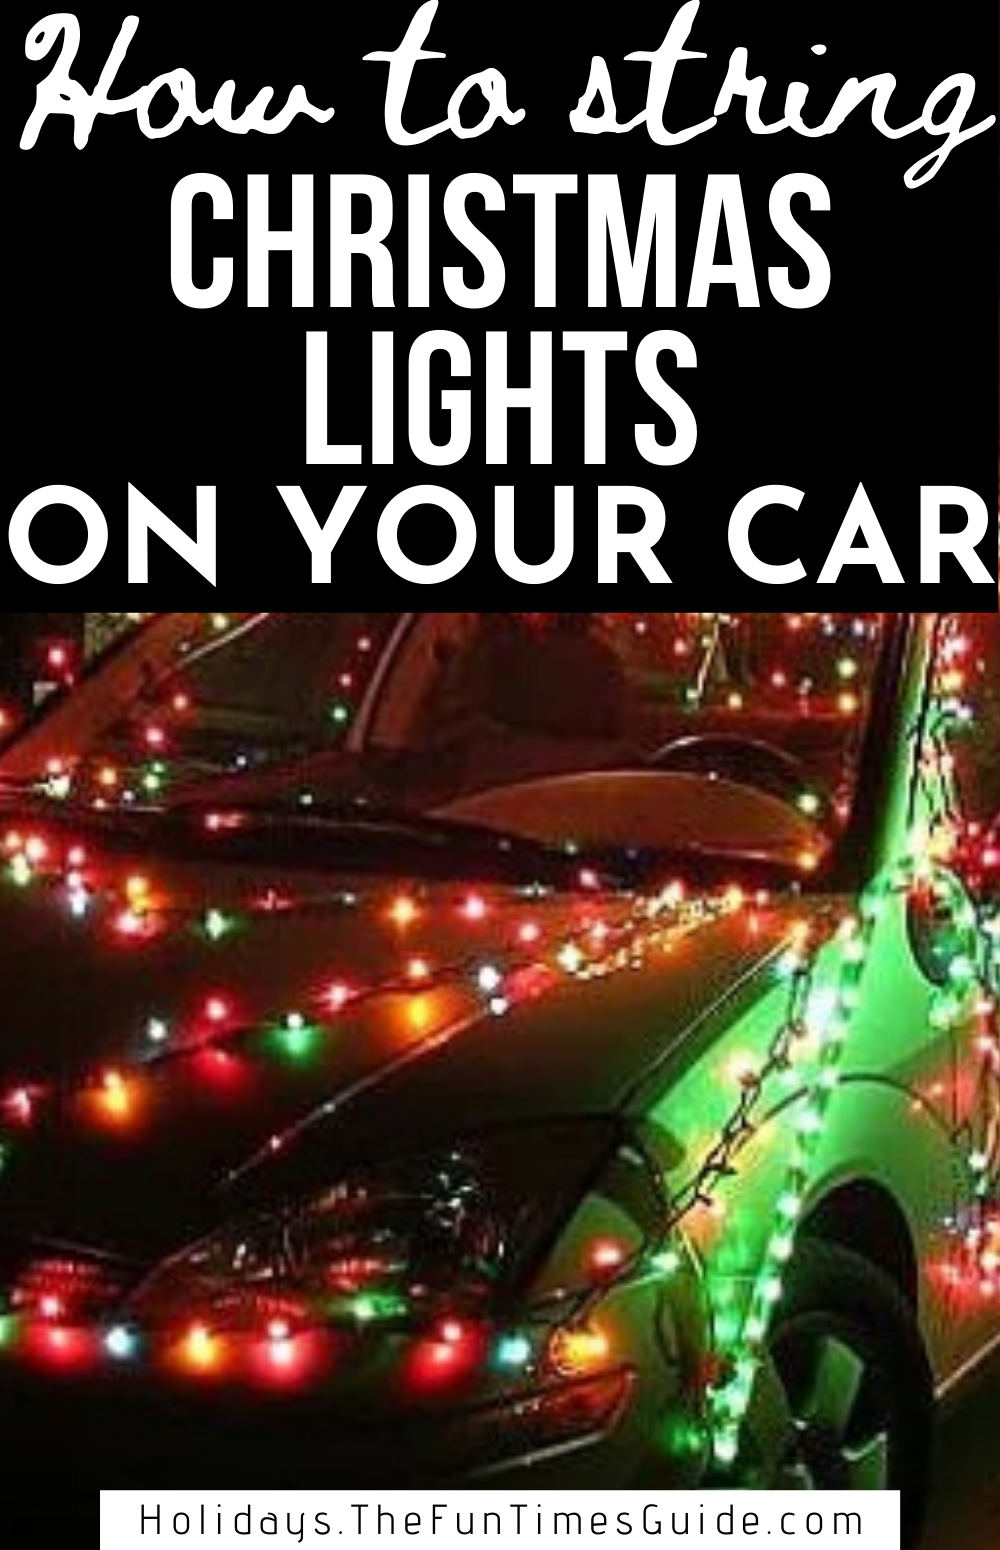 How To String Car Christmas Lights On Your Vehicle For The Holidays Or For A Parade